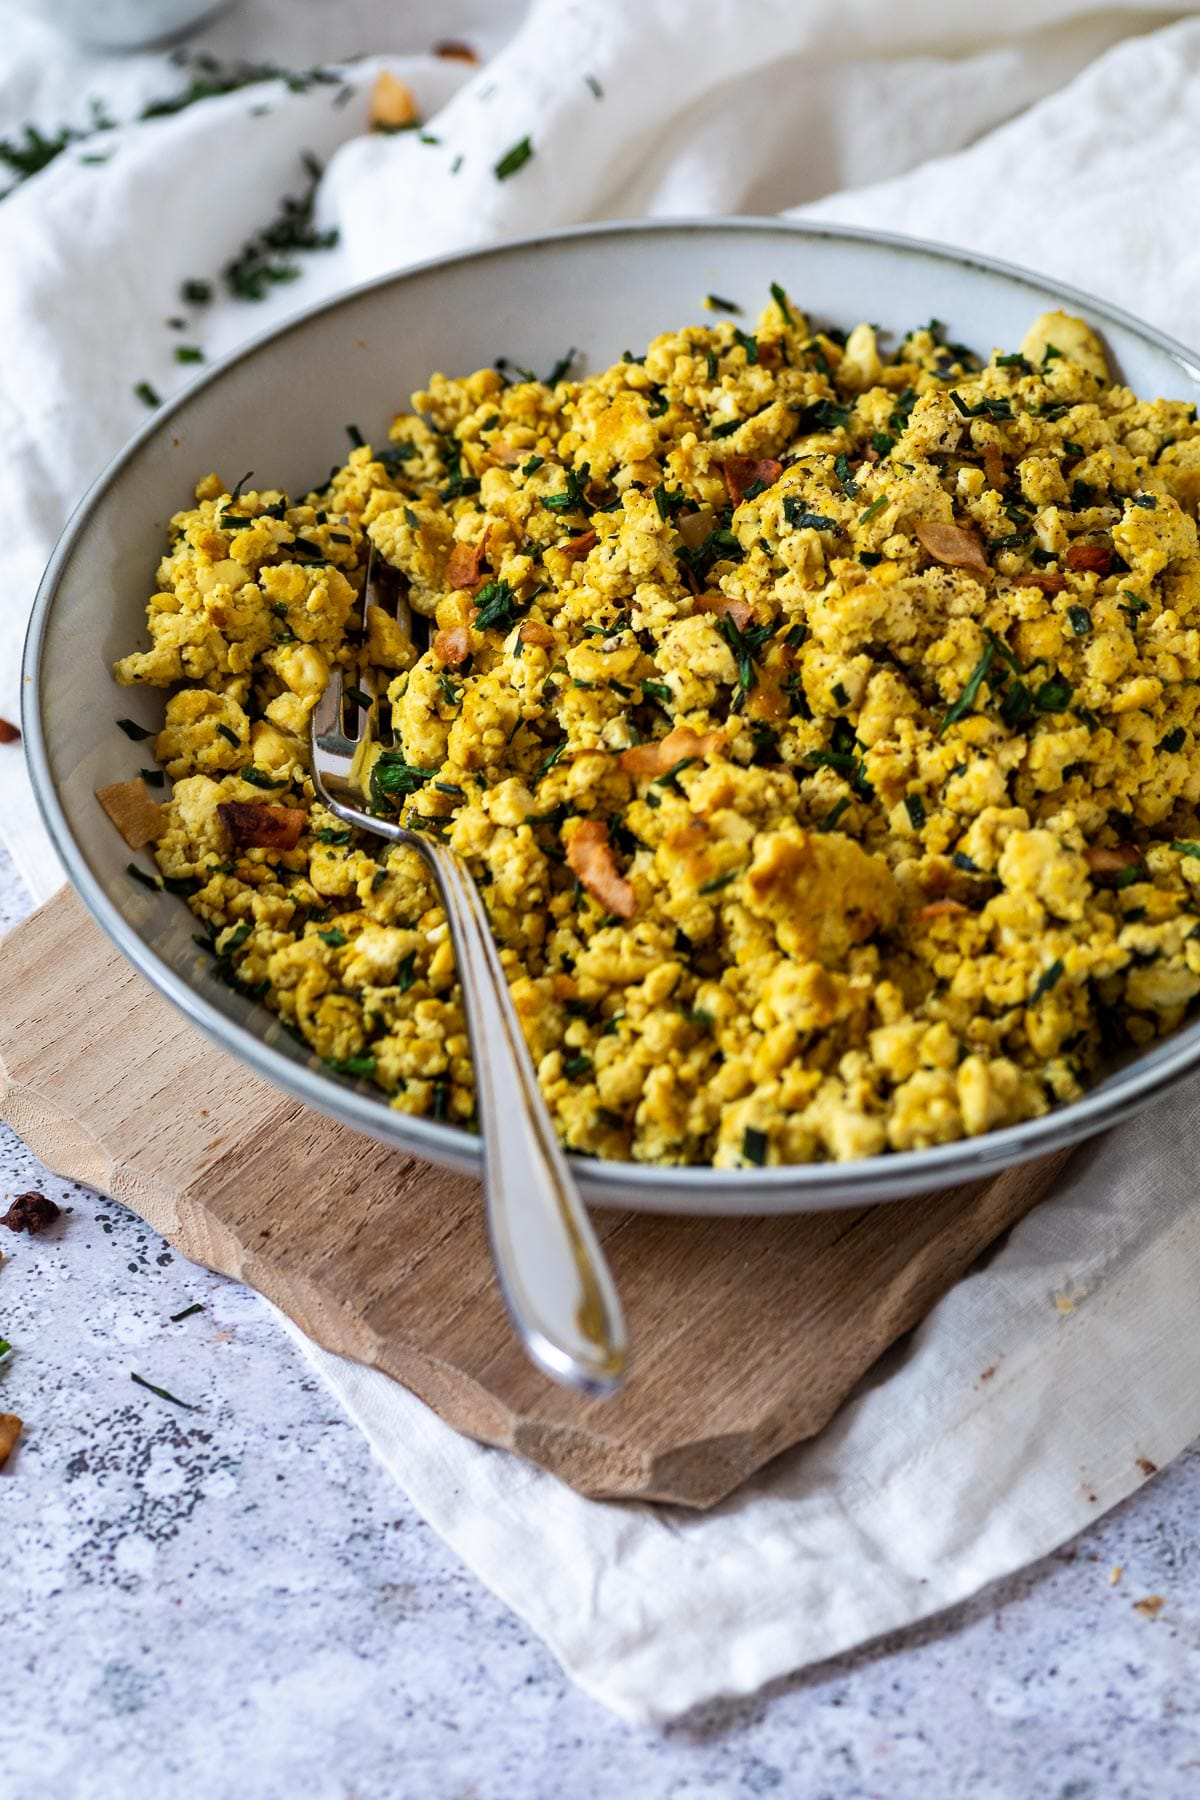 A bowl of vegan scrambled eggs with a fork